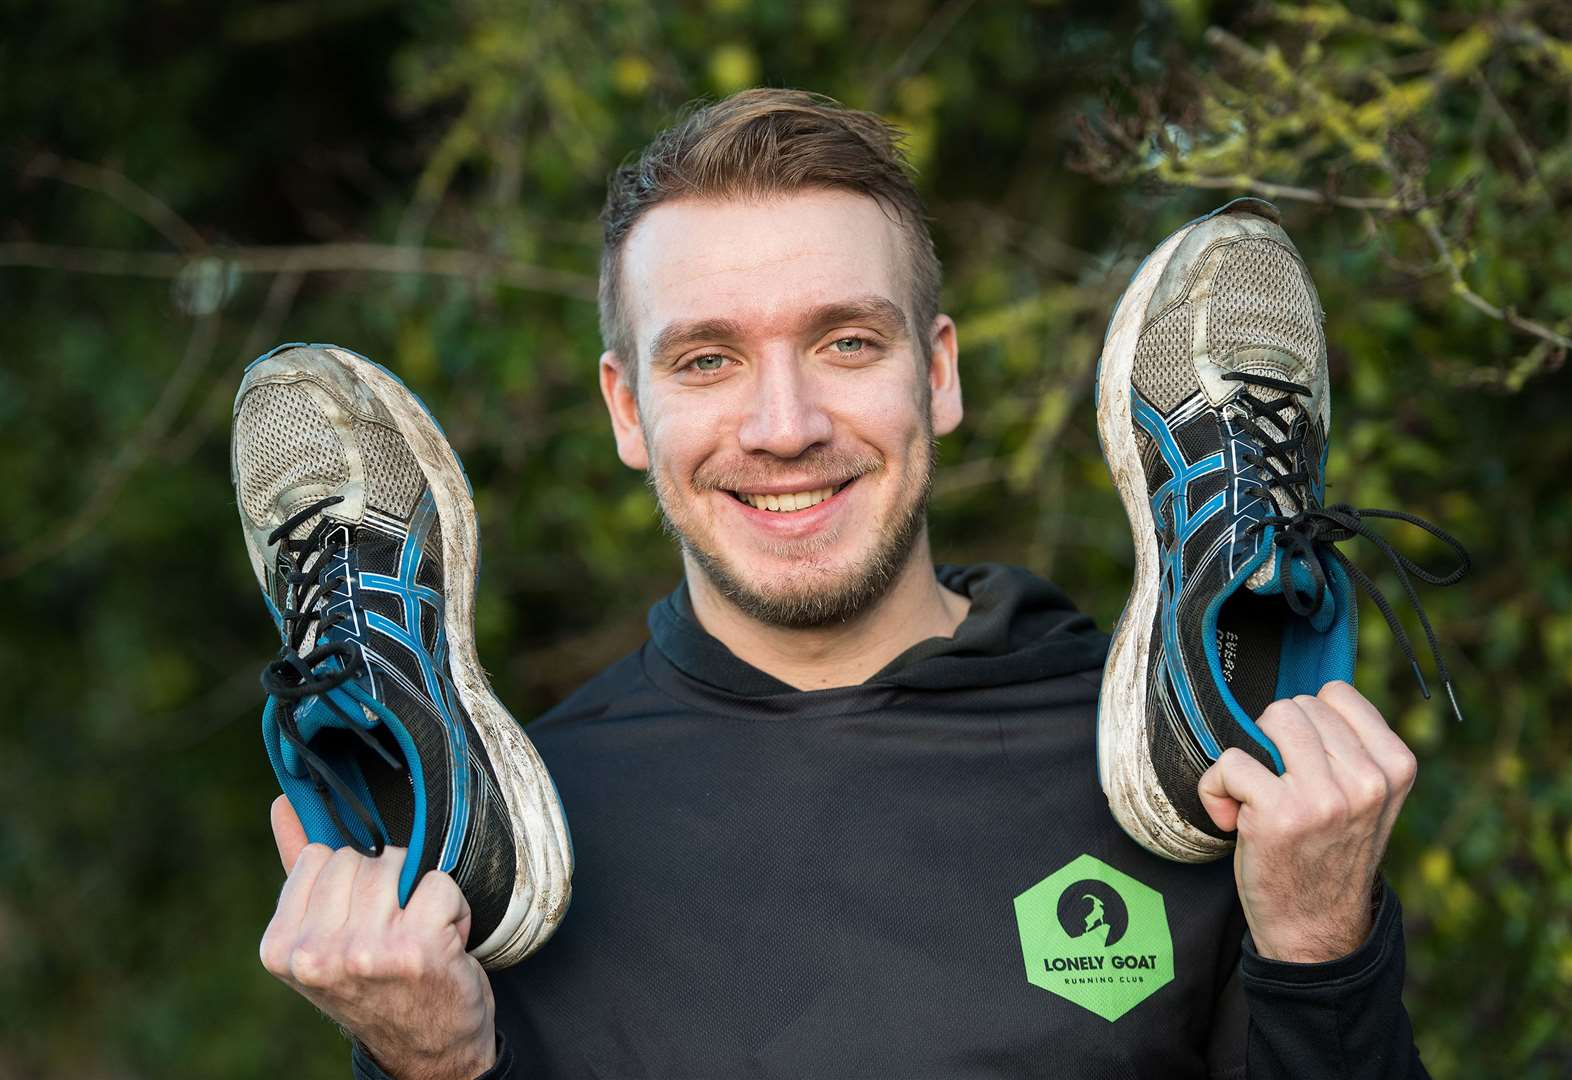 Gareth's bid to run 66 miles around the Isle of Wight - in one go